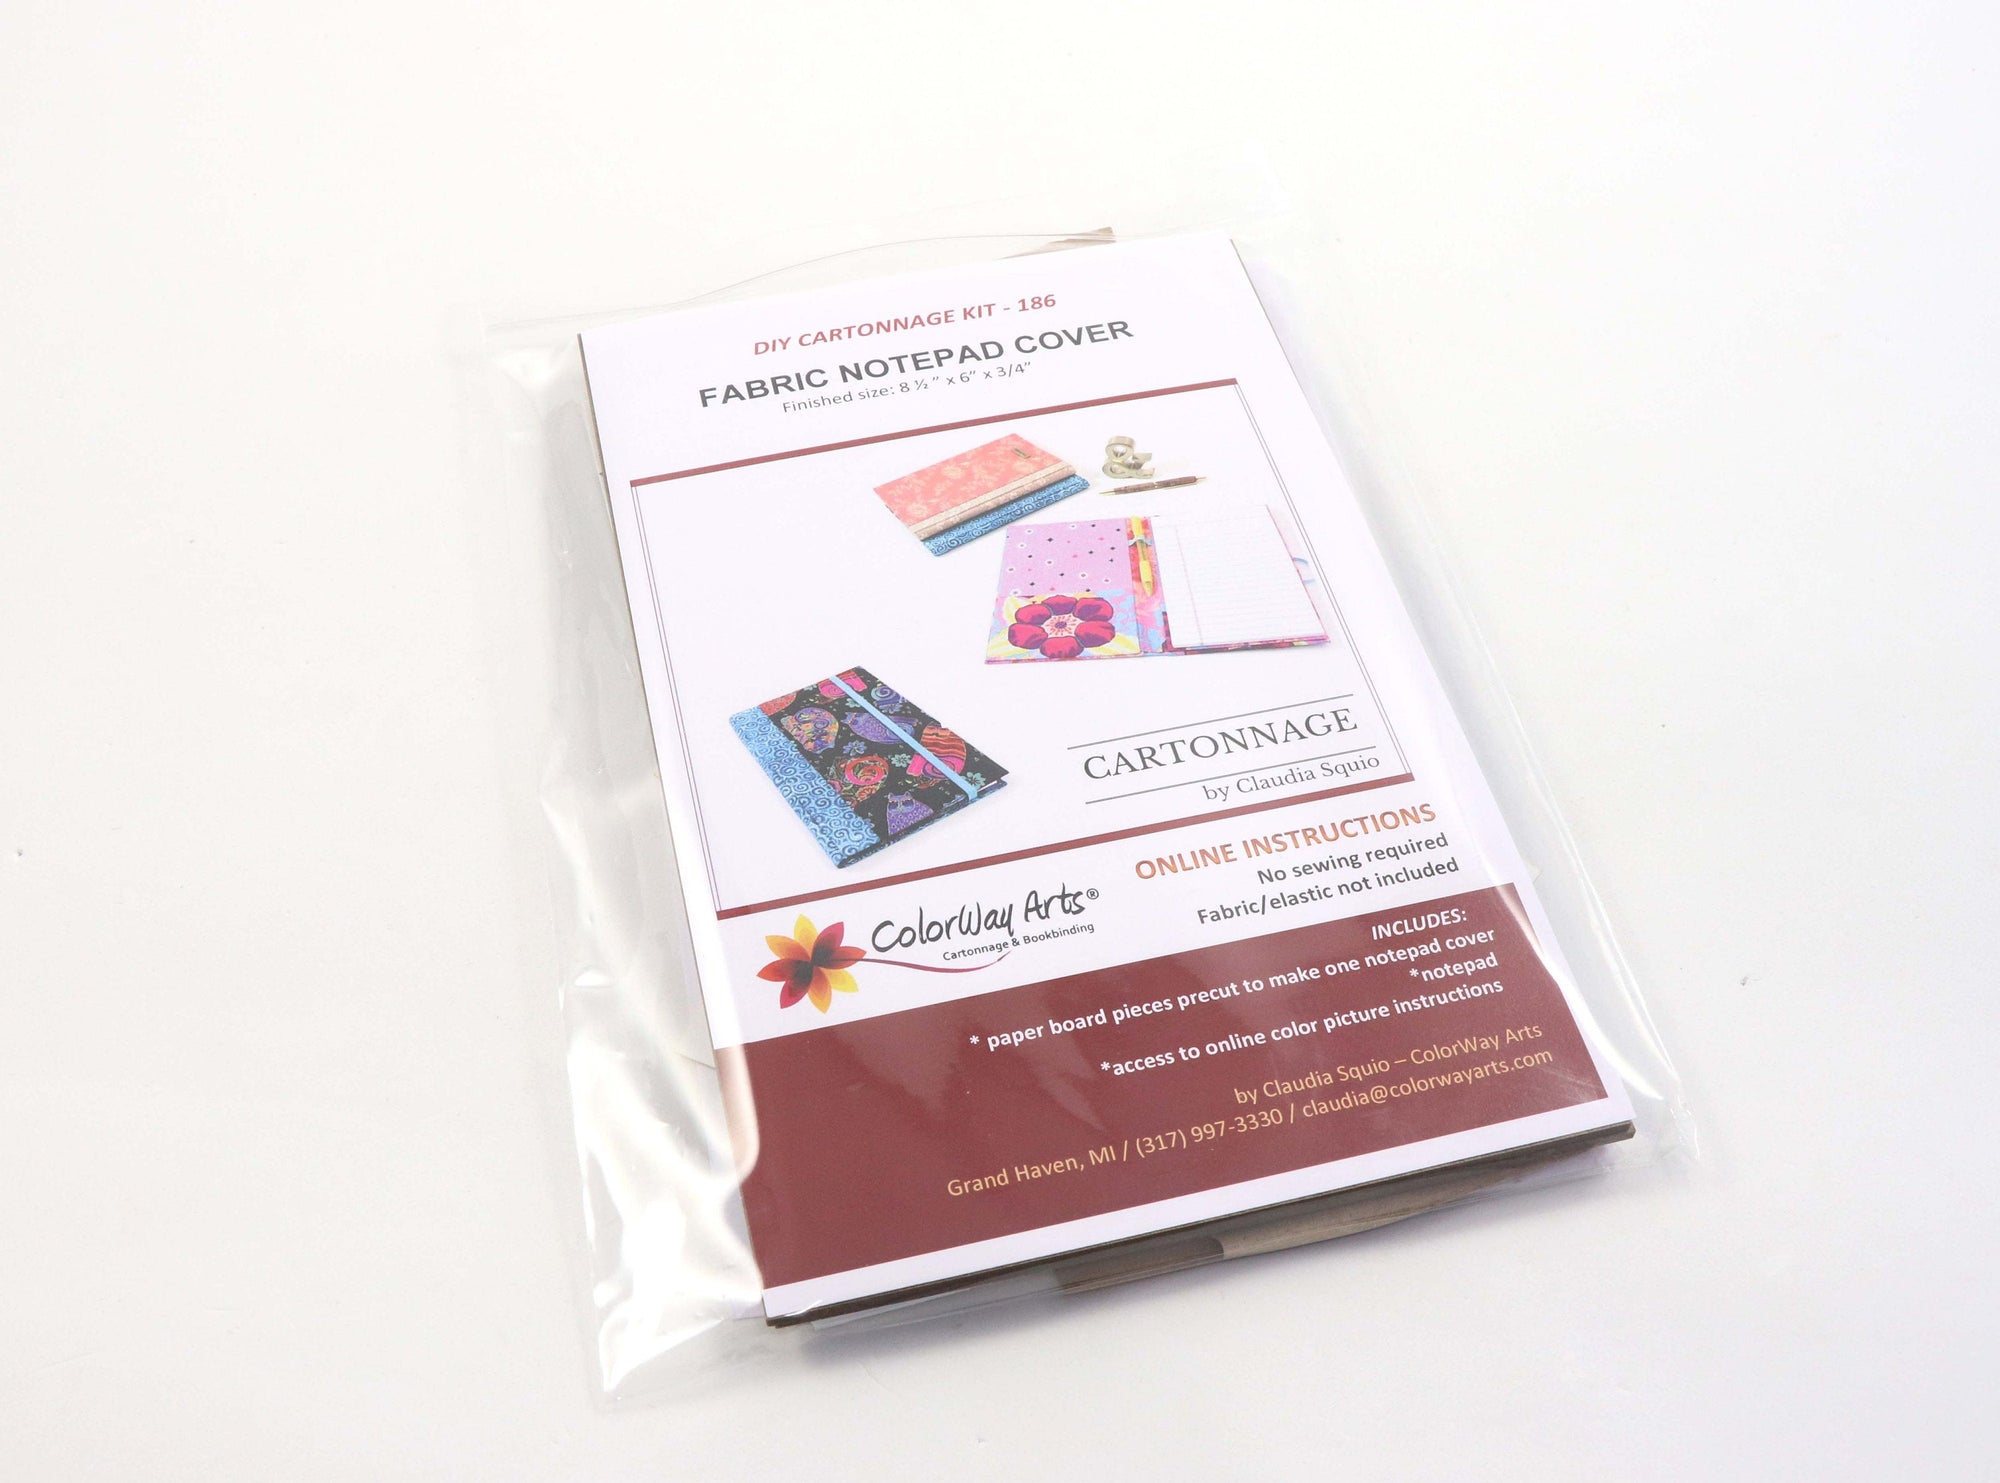 Fabric notepad cover DIY kit,  cartonnage kit 186, Online instructions included - Colorway Arts